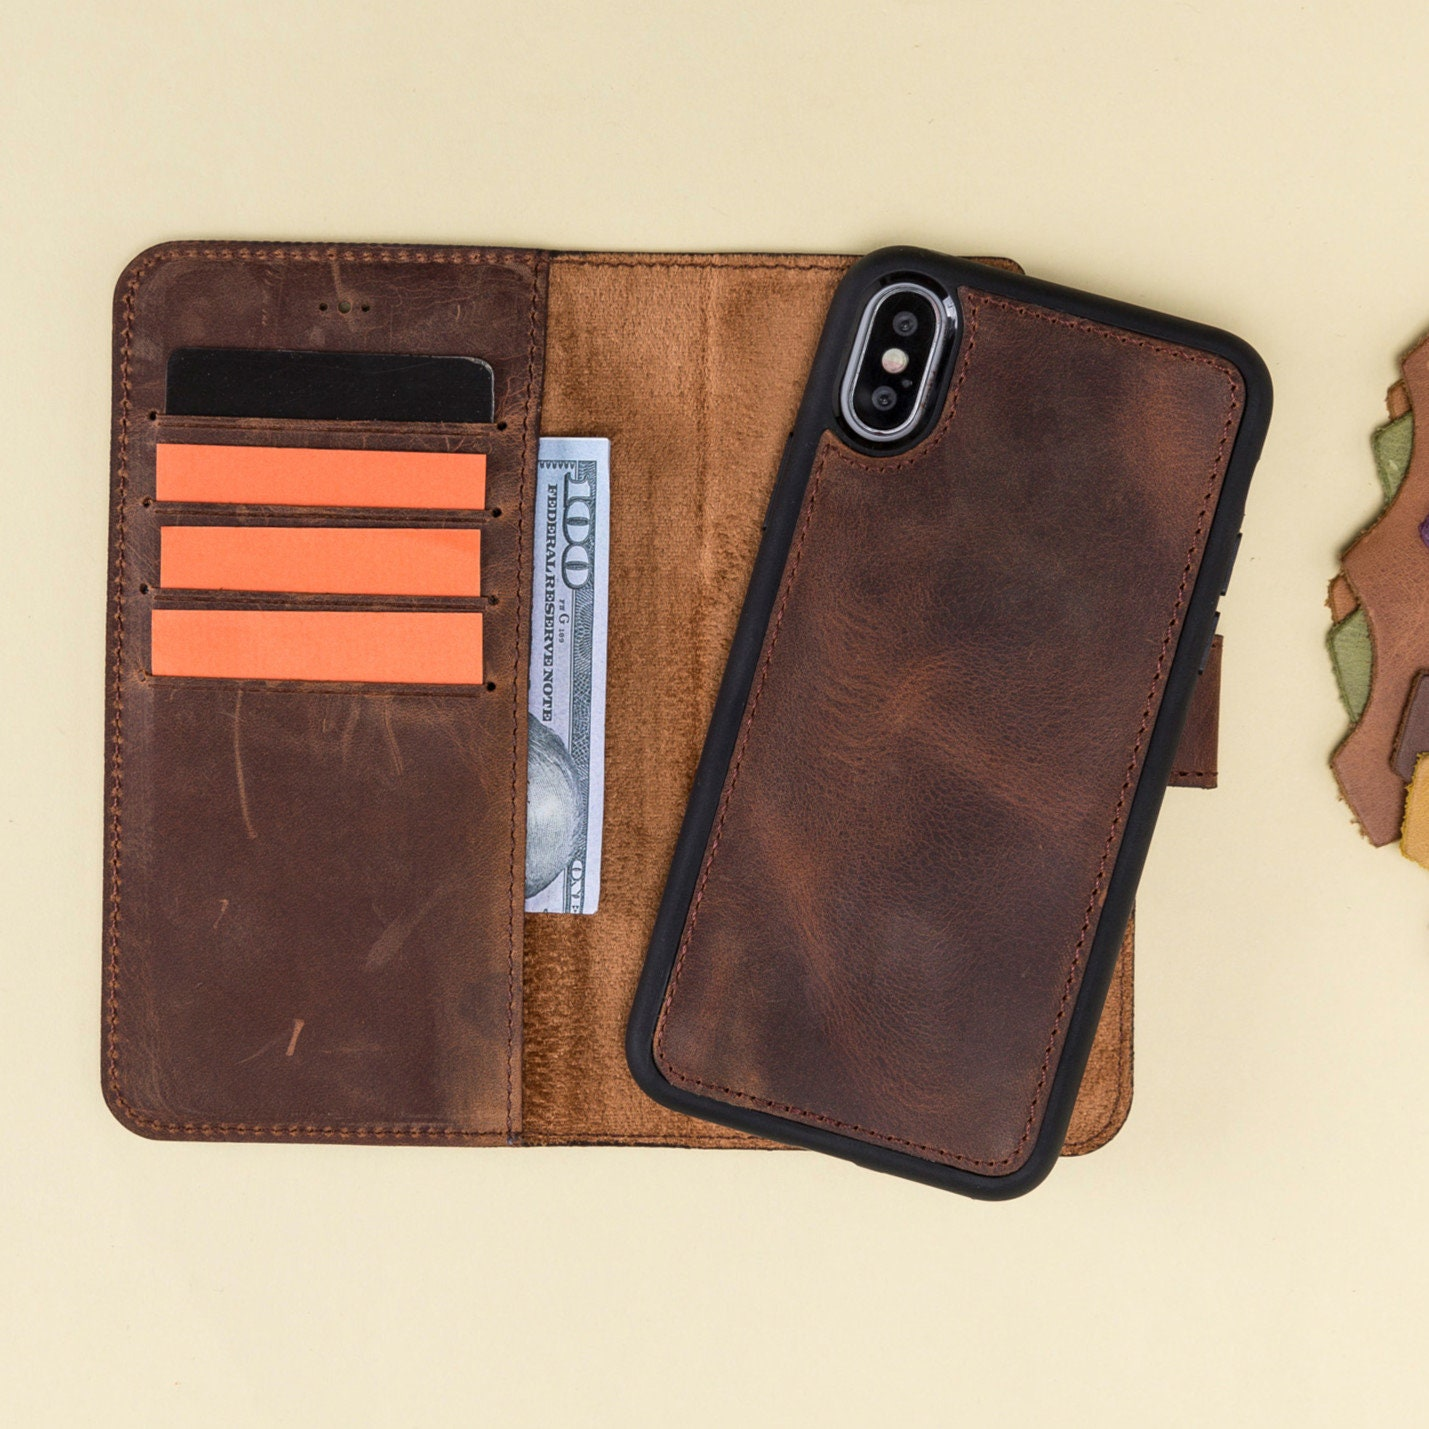 newest collection 0b26c 0b67a Leather Case for iPhone X, Brown Phone X Cover, Women or Man, Detachable  Magnetic, Mobile Case, Laser, Initials, Gift Wrapping Avaliable